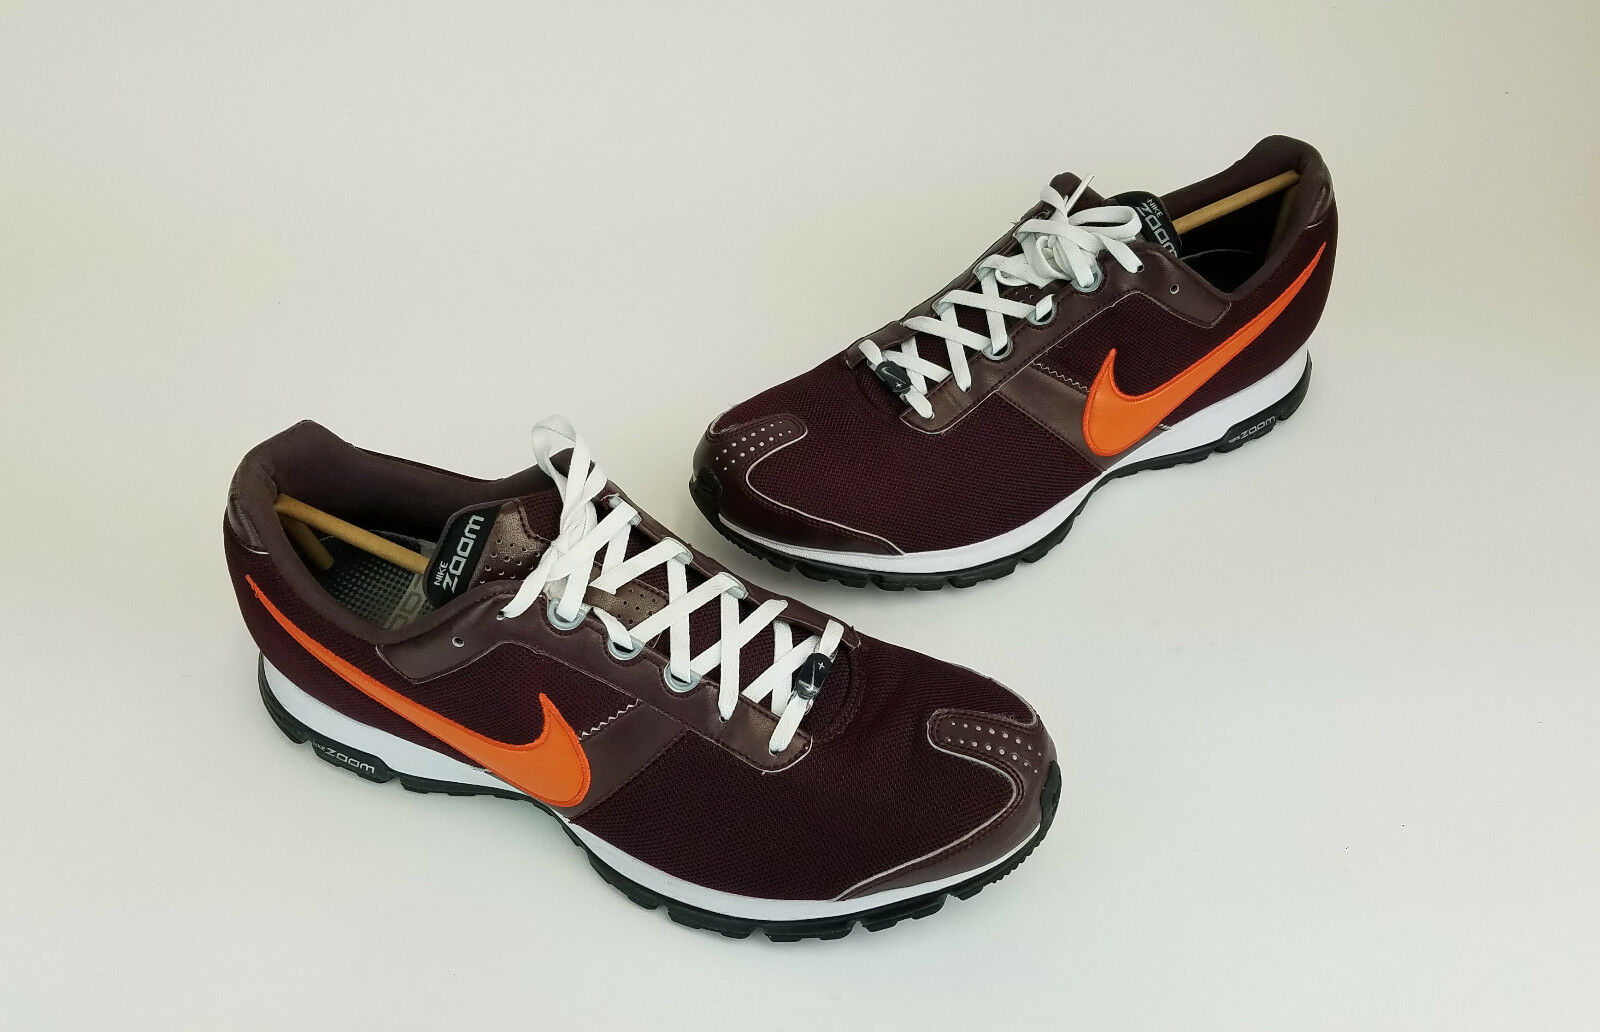 1 of 100 SUPER RARE 2008' MENS NIKE NEW YORK NIKETOWN AIR ZOOM RS+ID SIZE 12